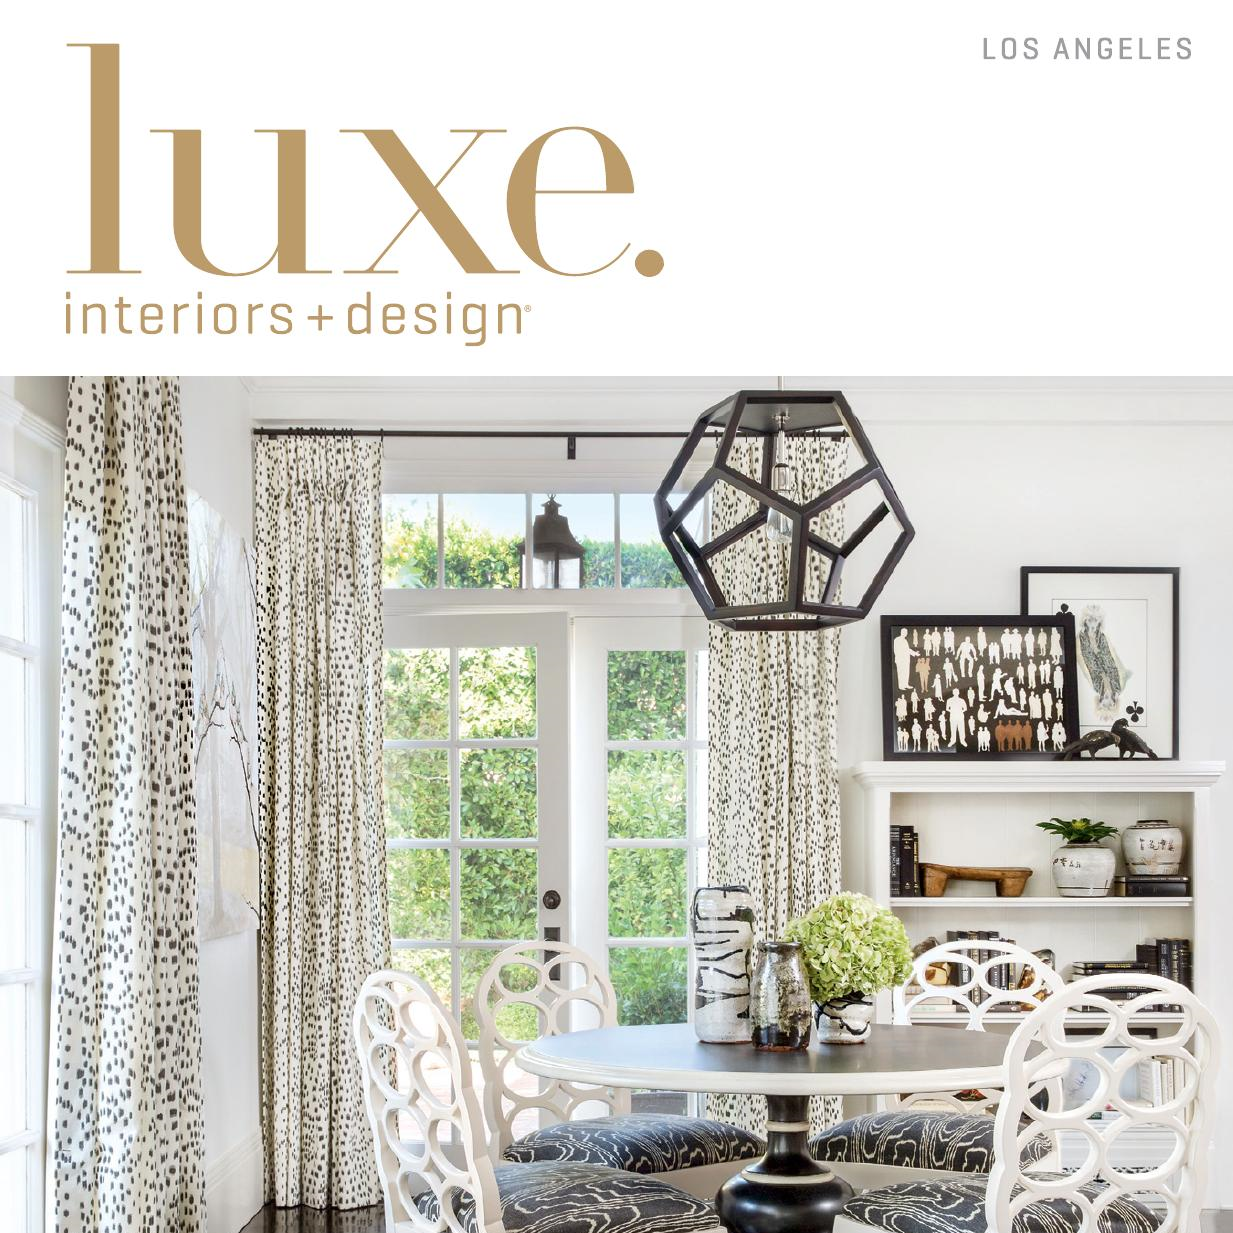 Best Tips For Fall Entertaining |Luxe Interiors + Design   Oct. 17, 2013